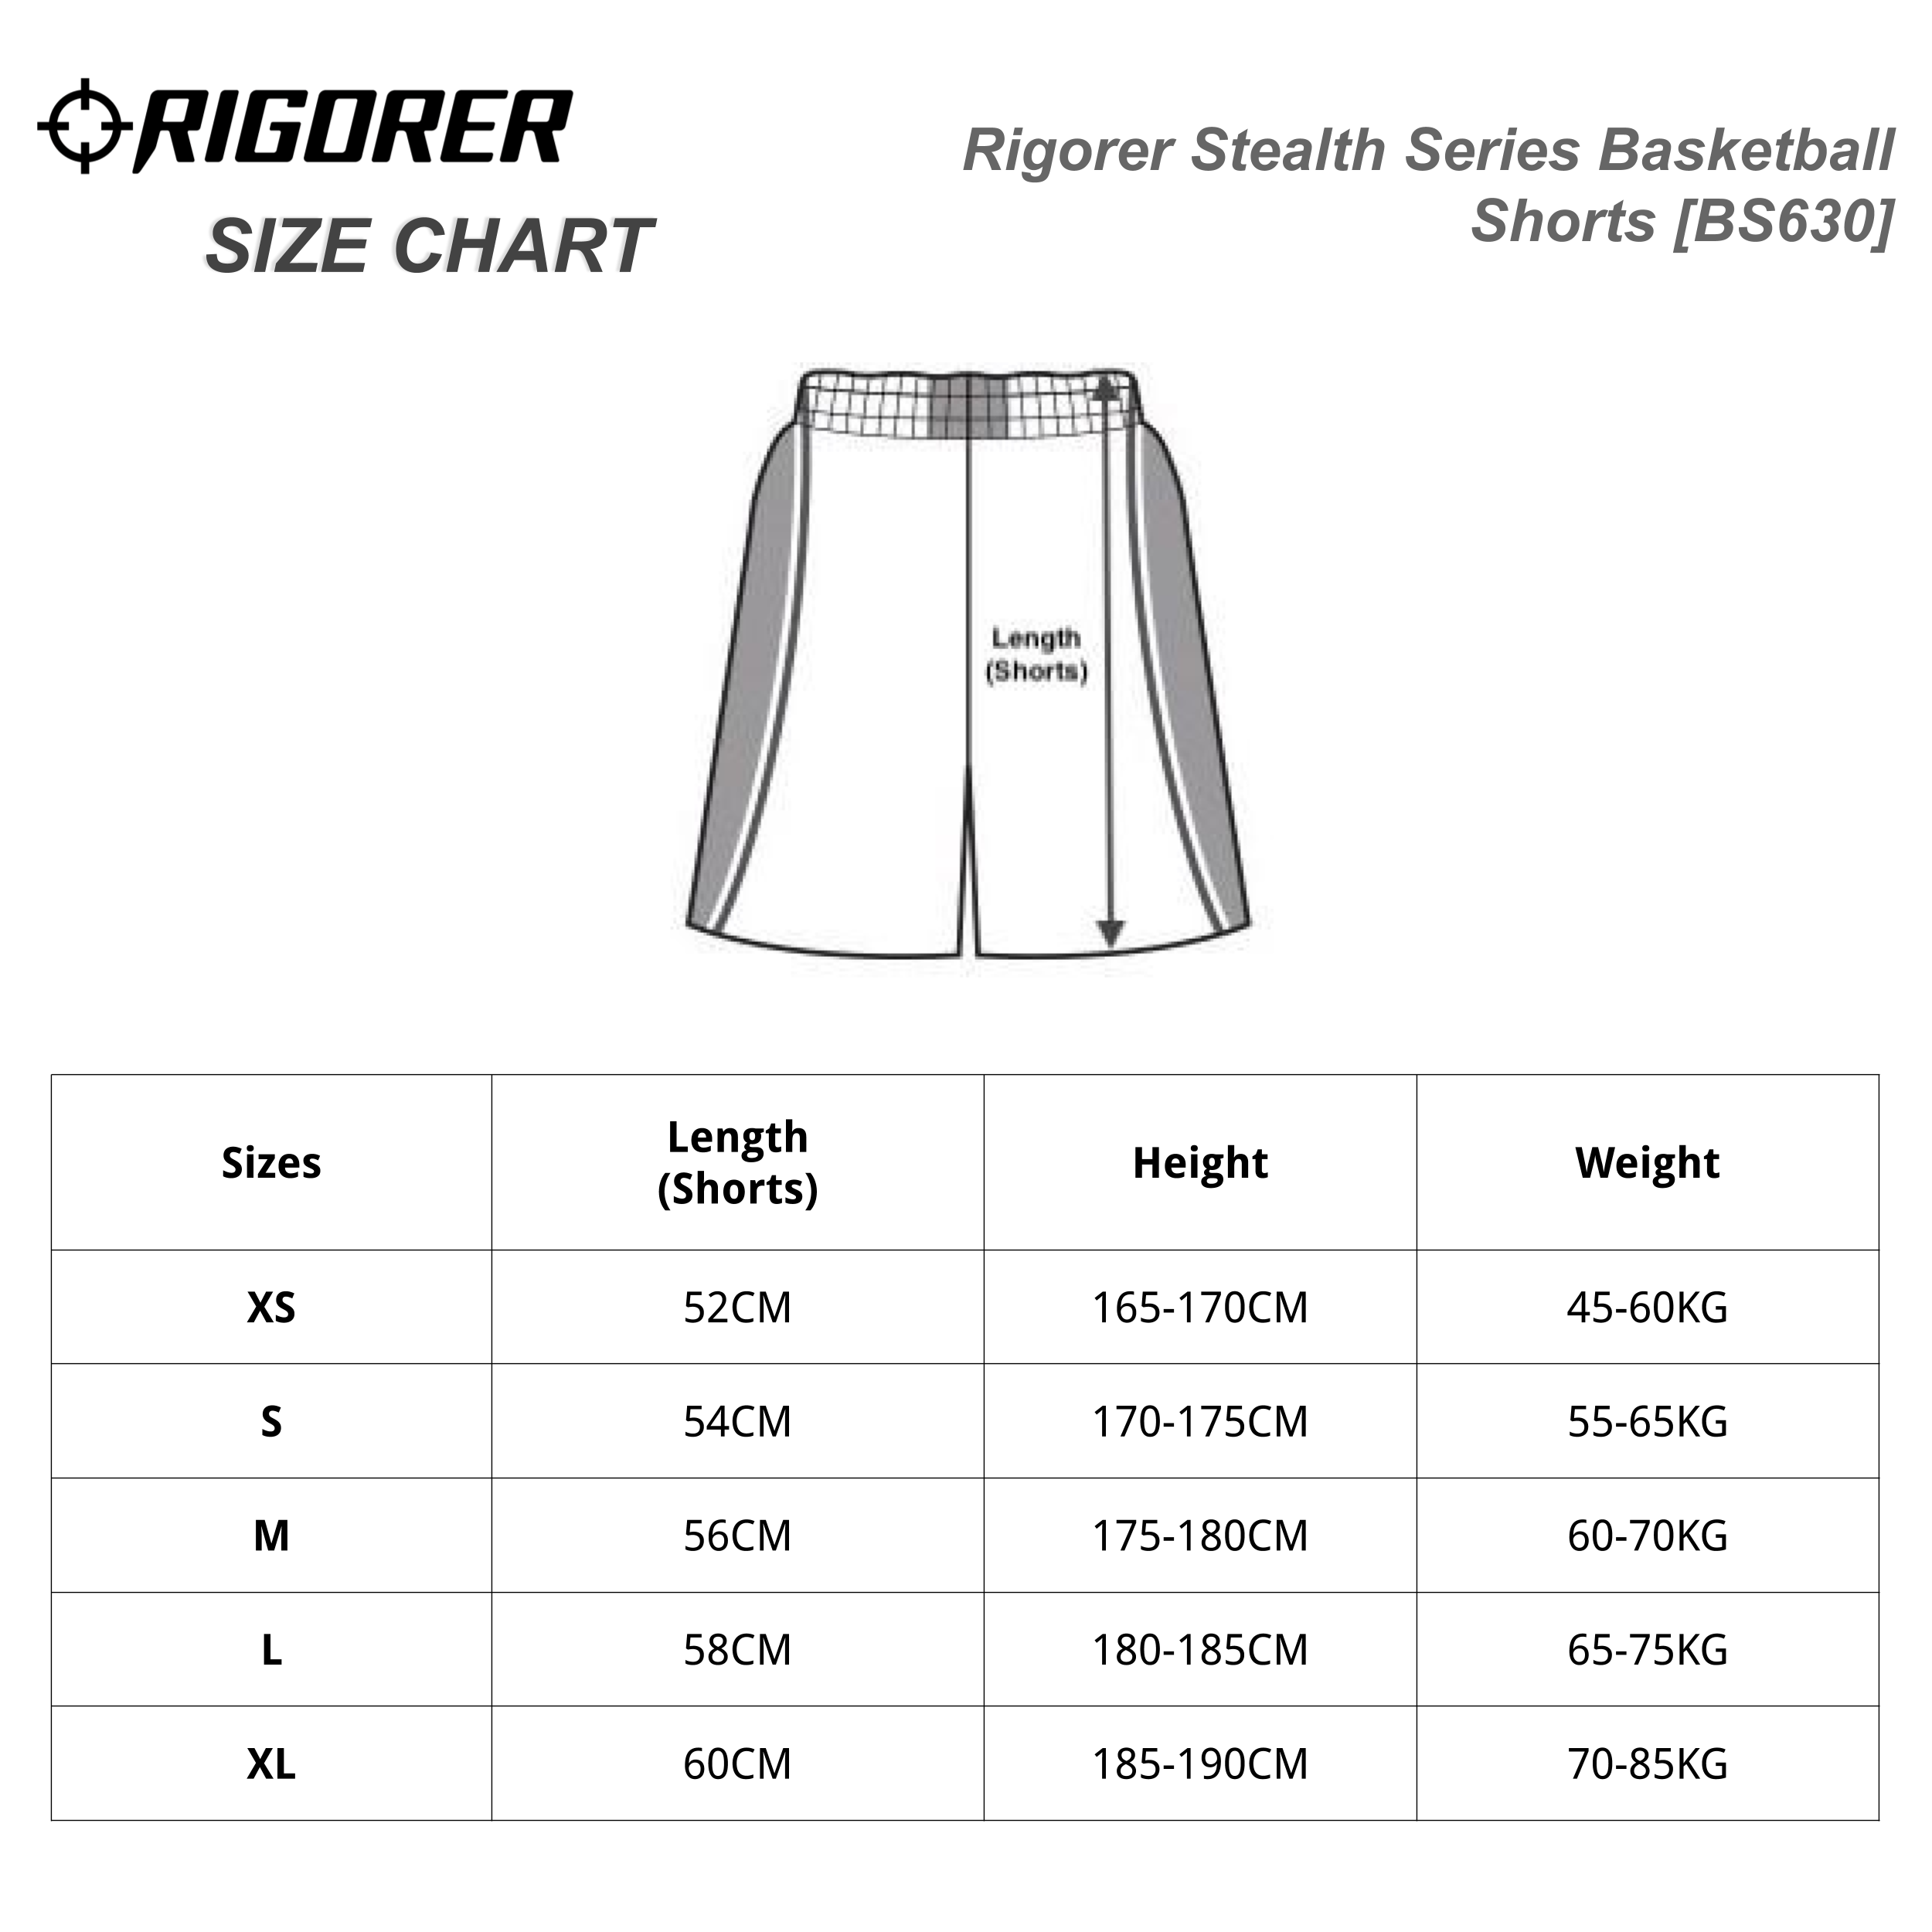 Rigorer Stealth Series Basketball Shorts [BS630] Sizing Chart